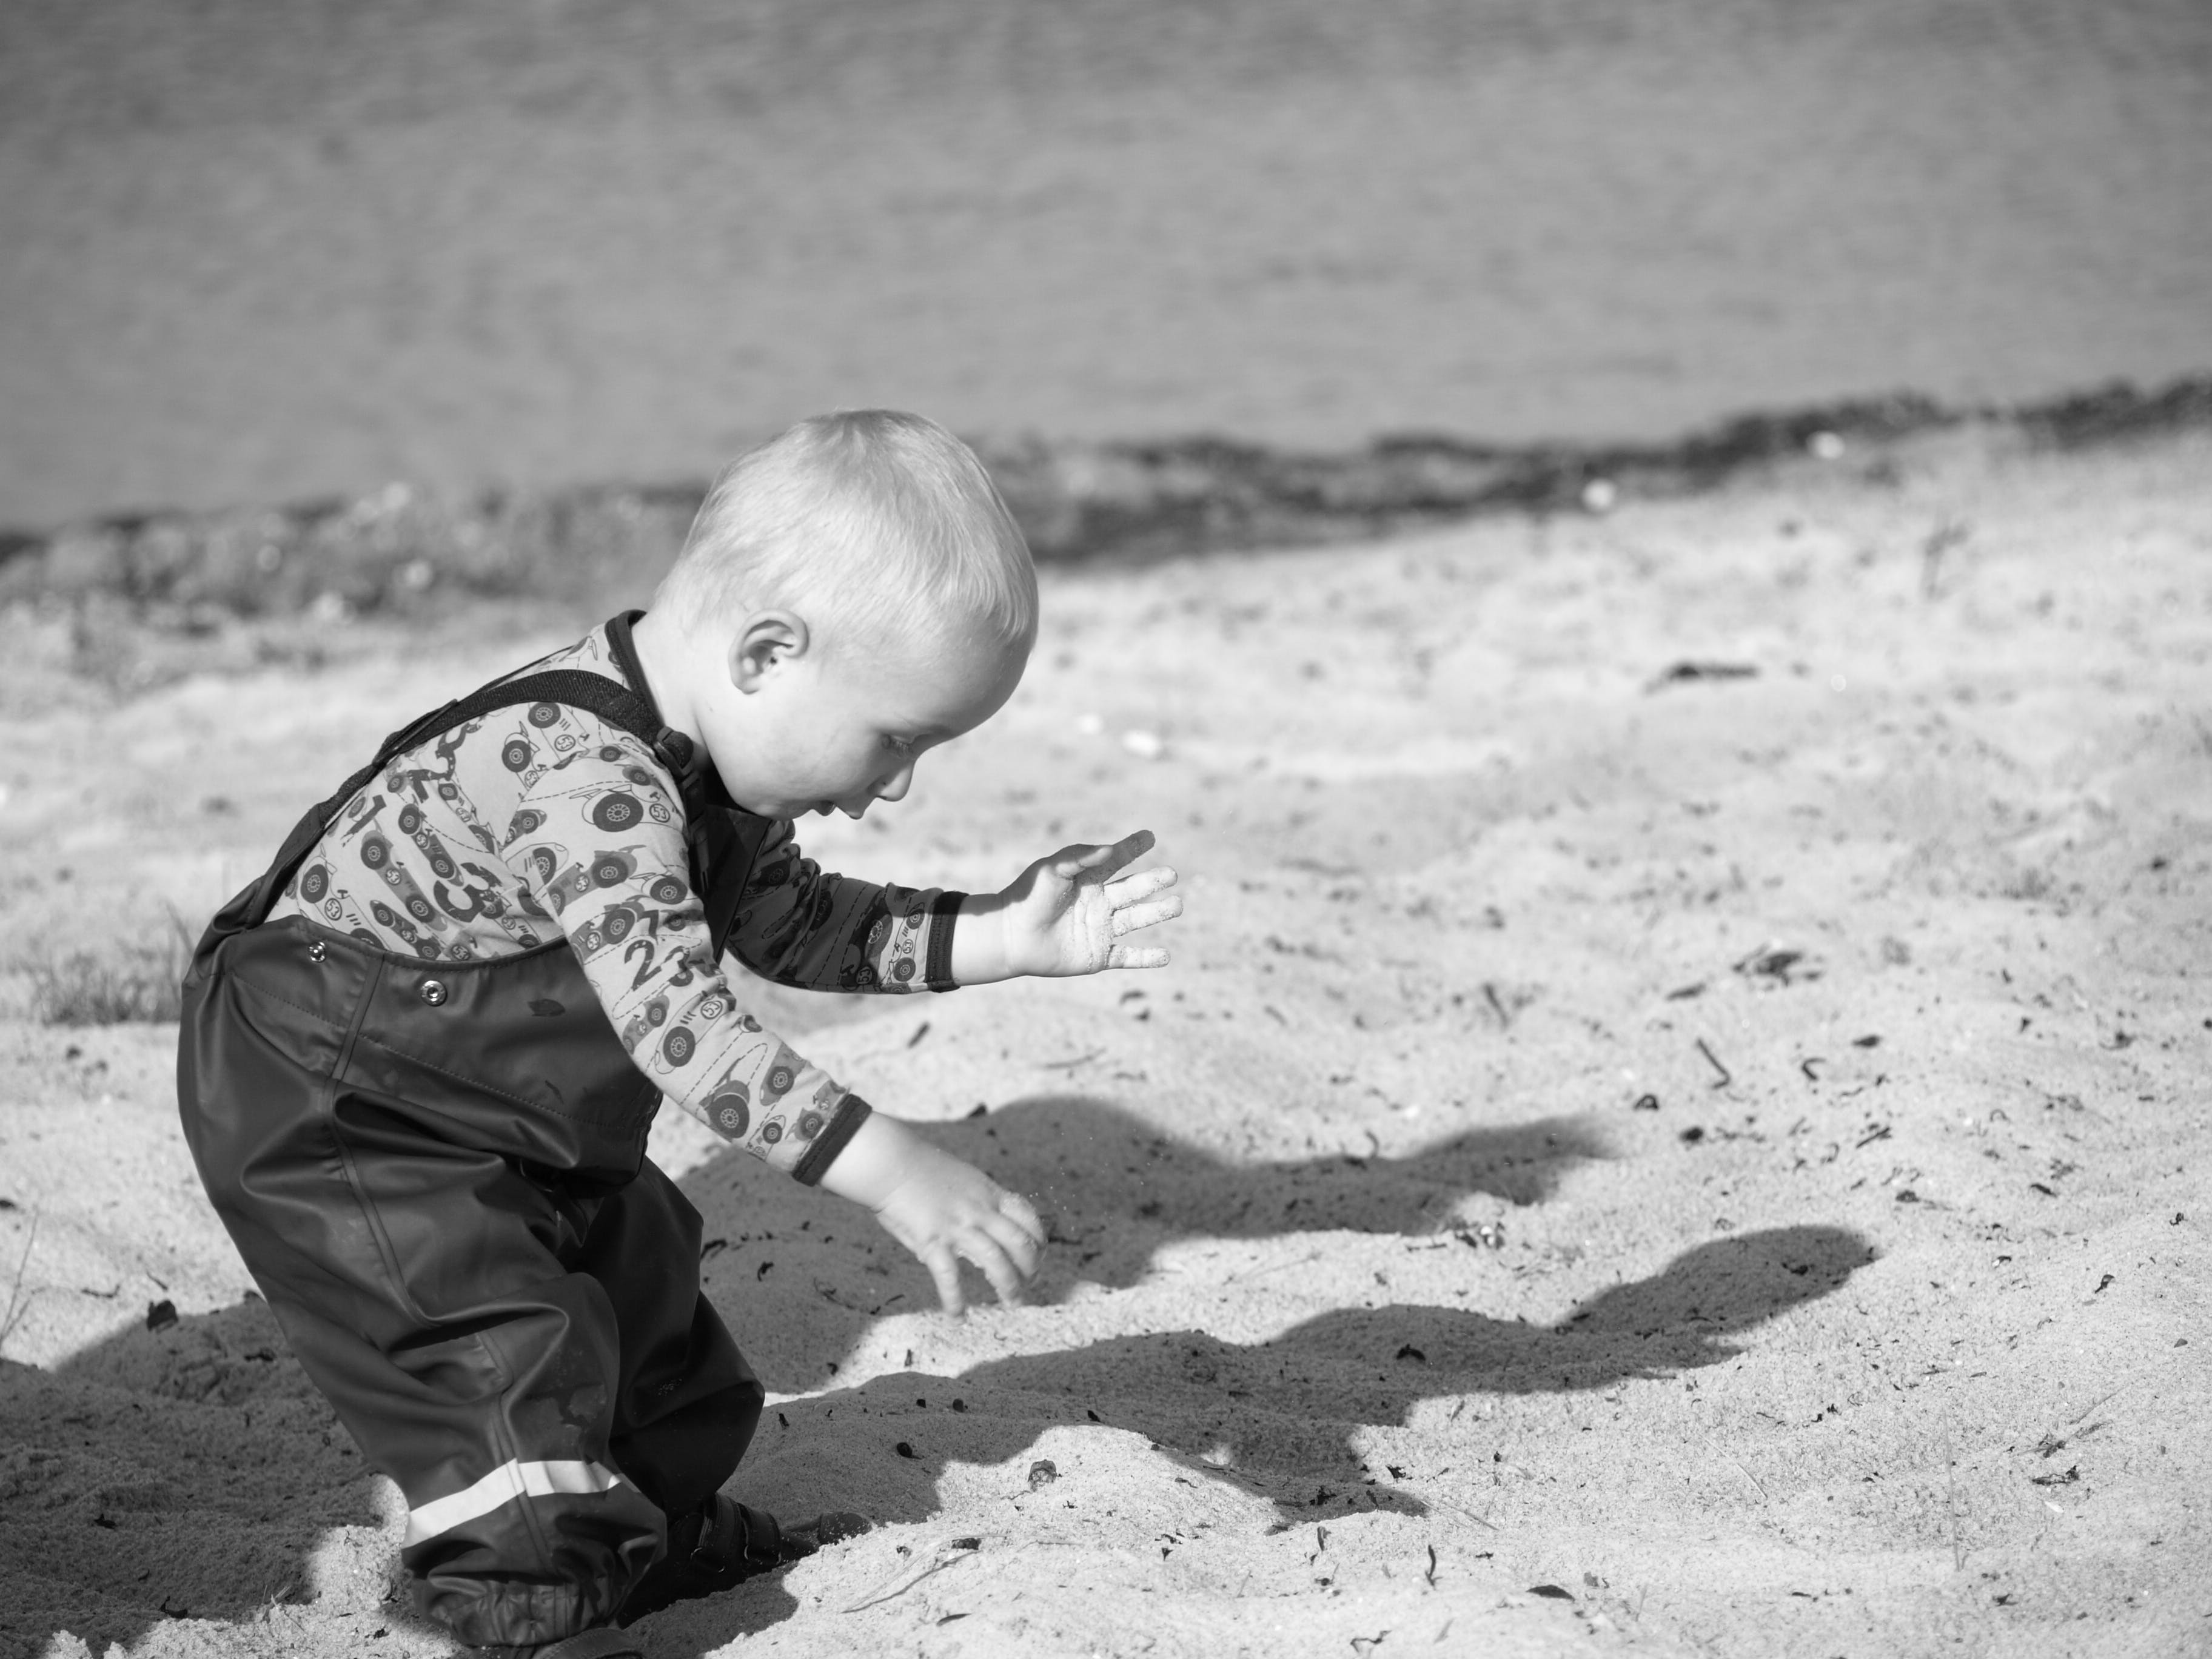 Grayscale Photography Of Toddler On Beach Sand